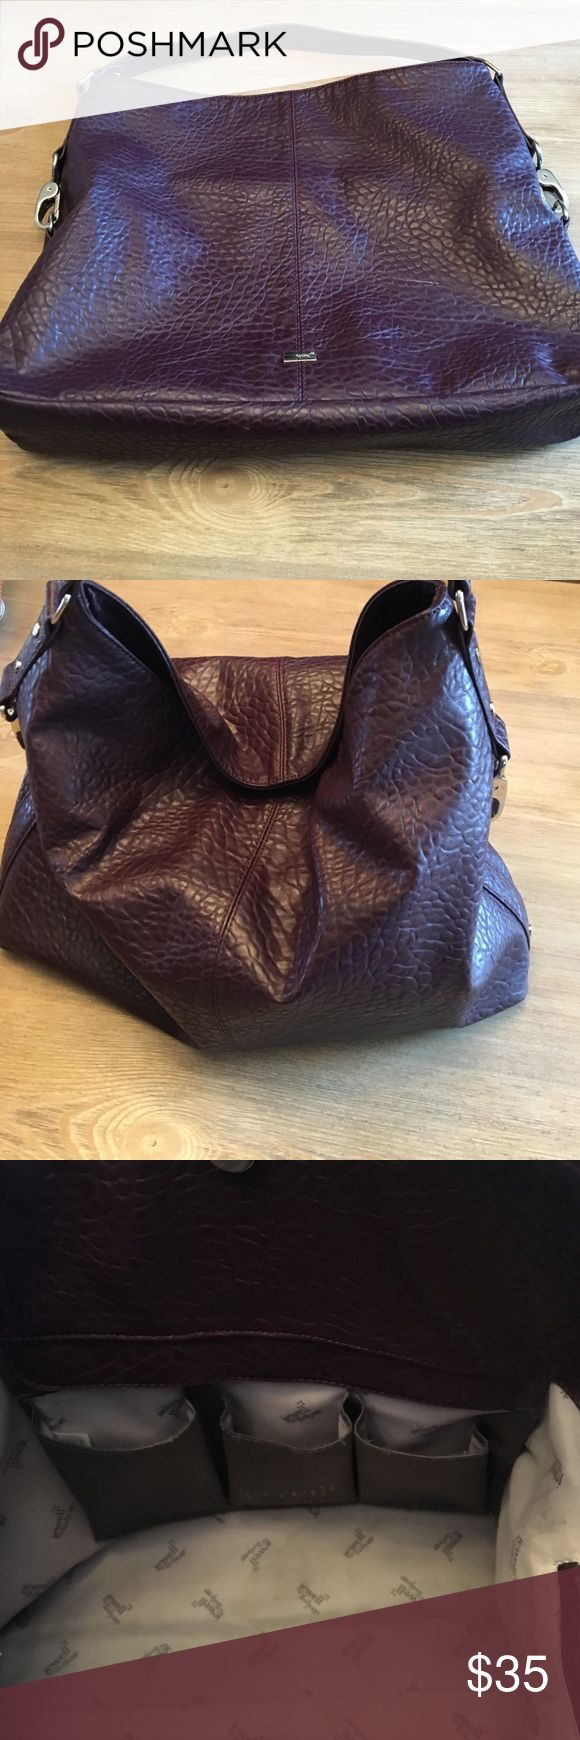 Thirty one purse Cognac pebble color purse.  Used for a few months. Does have one small scratch on the front.   Sooooo roomy!  I have used this as a diaper bag too! Bags